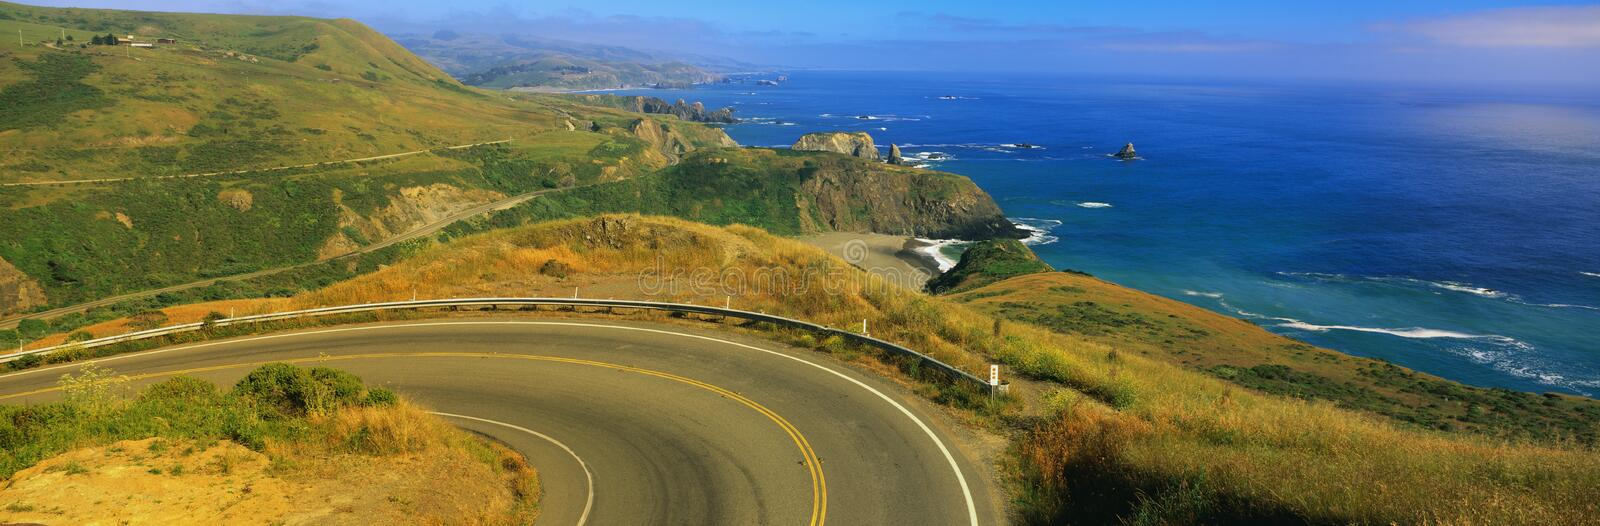 Pacific Coast Highway and ocean, CA. This is Route 1 also known as the Pacific Coast Highway. The road curves around a bend to the left and drops down stock images